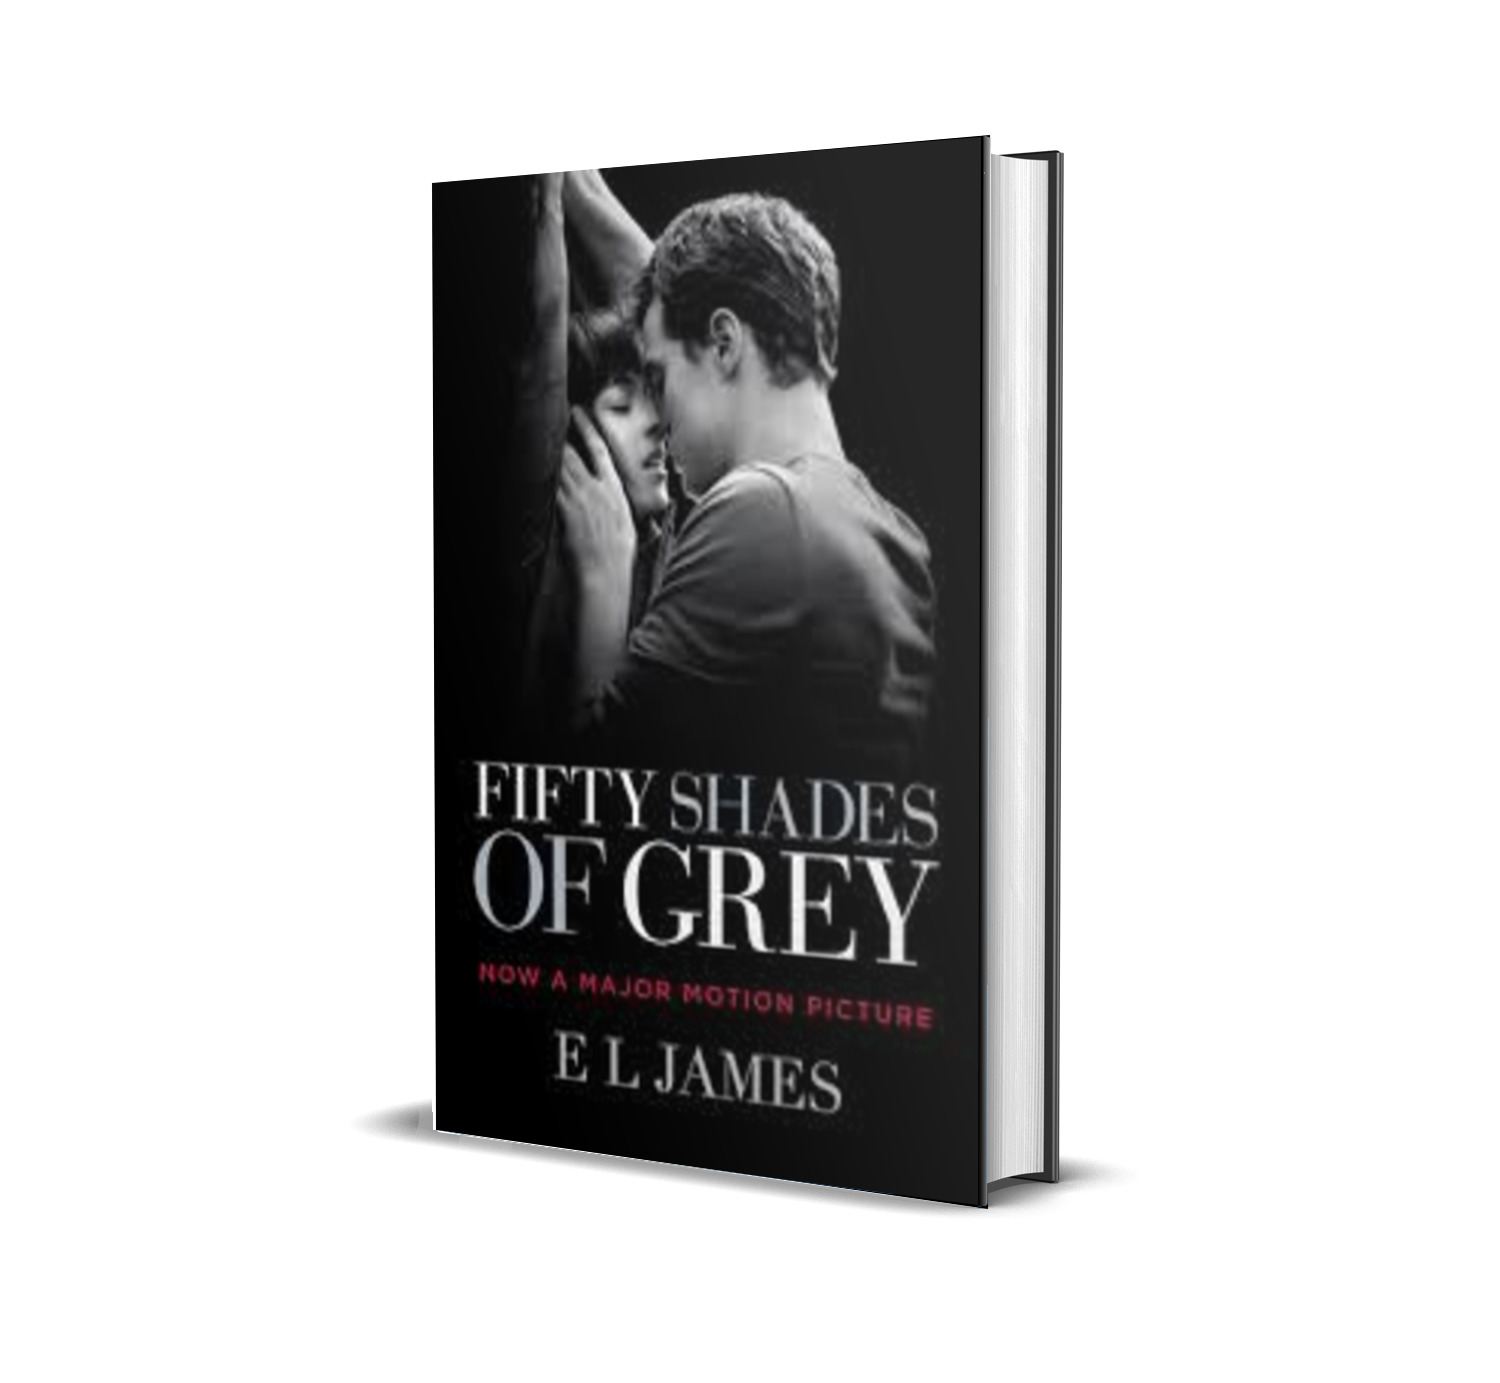 FIFTY SHADES OF GREY- E.L James